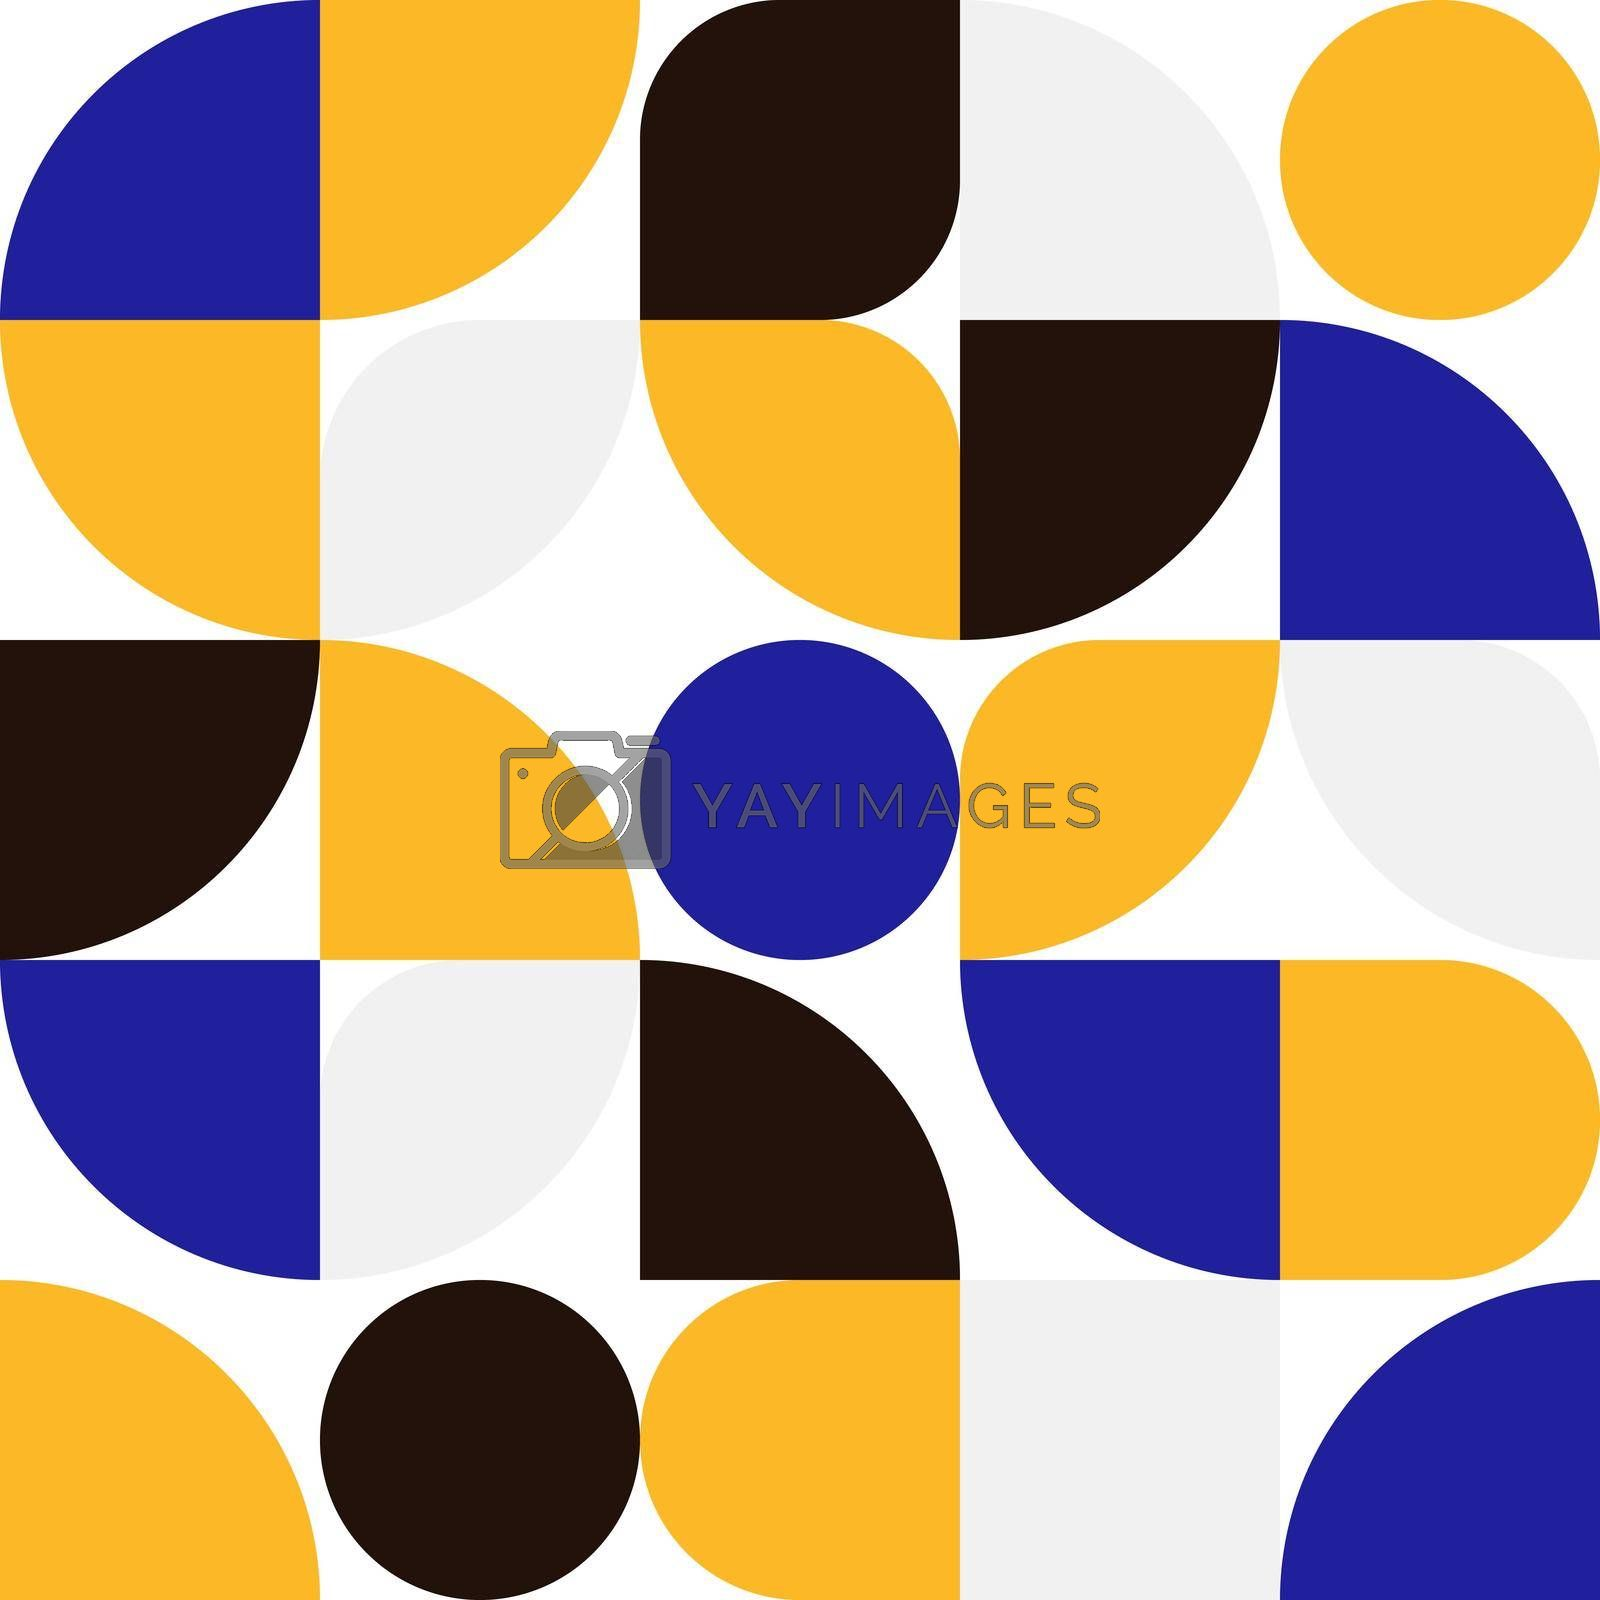 Abstract geometric sinple shape pattern minimal design background. You can use for web banner, print, wallpaper, presentation, etc. Vector illustration